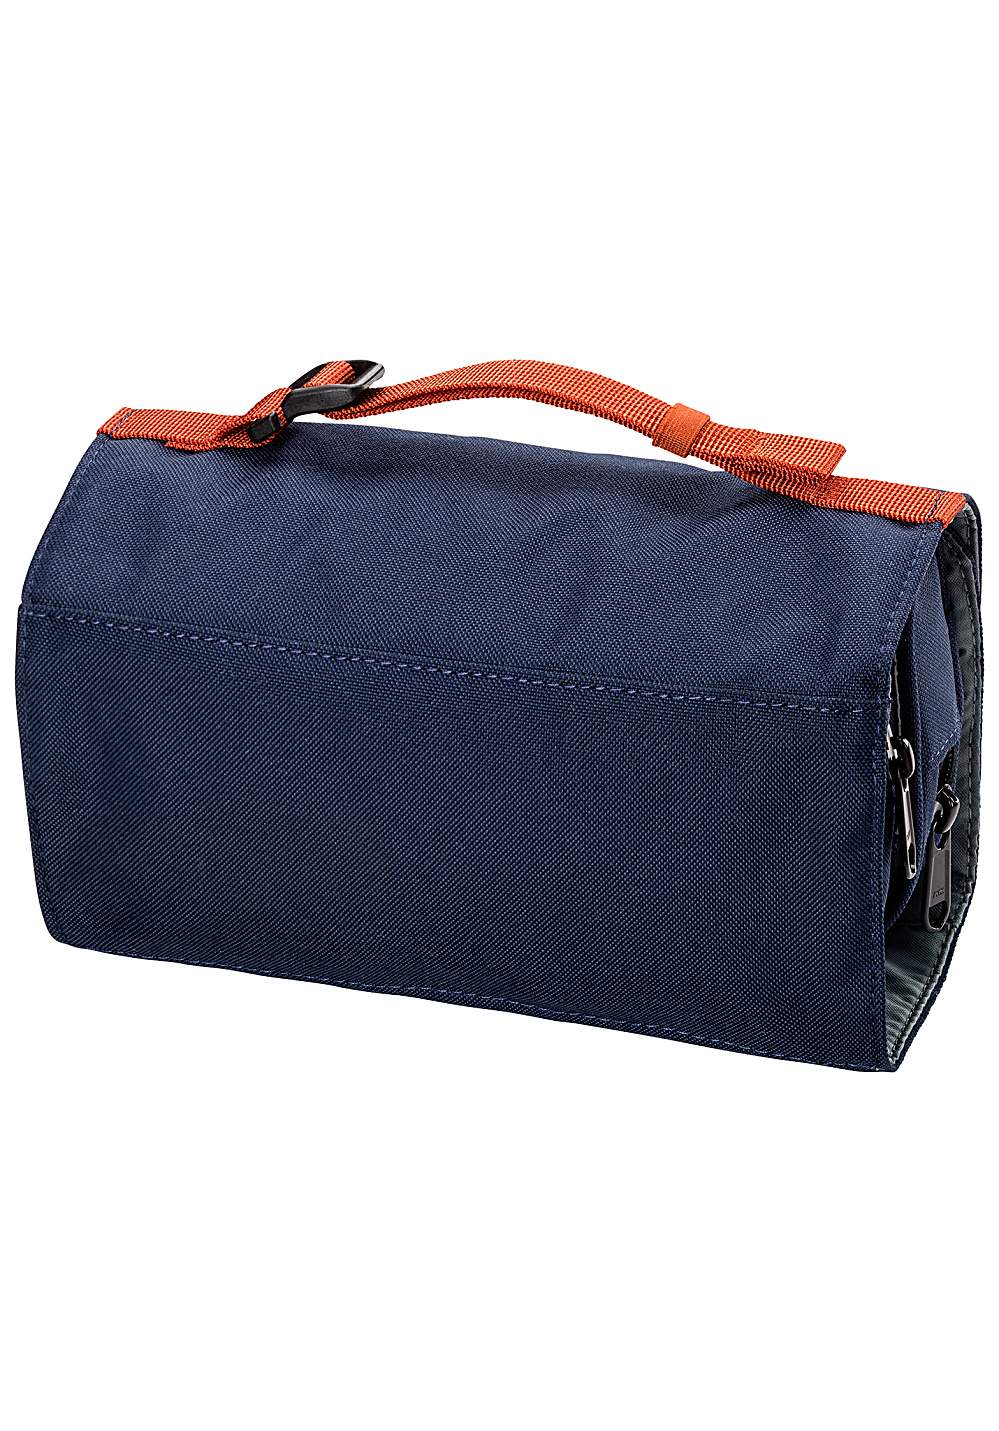 Next. This product is currently out of stock. Dakine. Travel Tool Kit - Overnight  Bag for Men 253a023c72d66